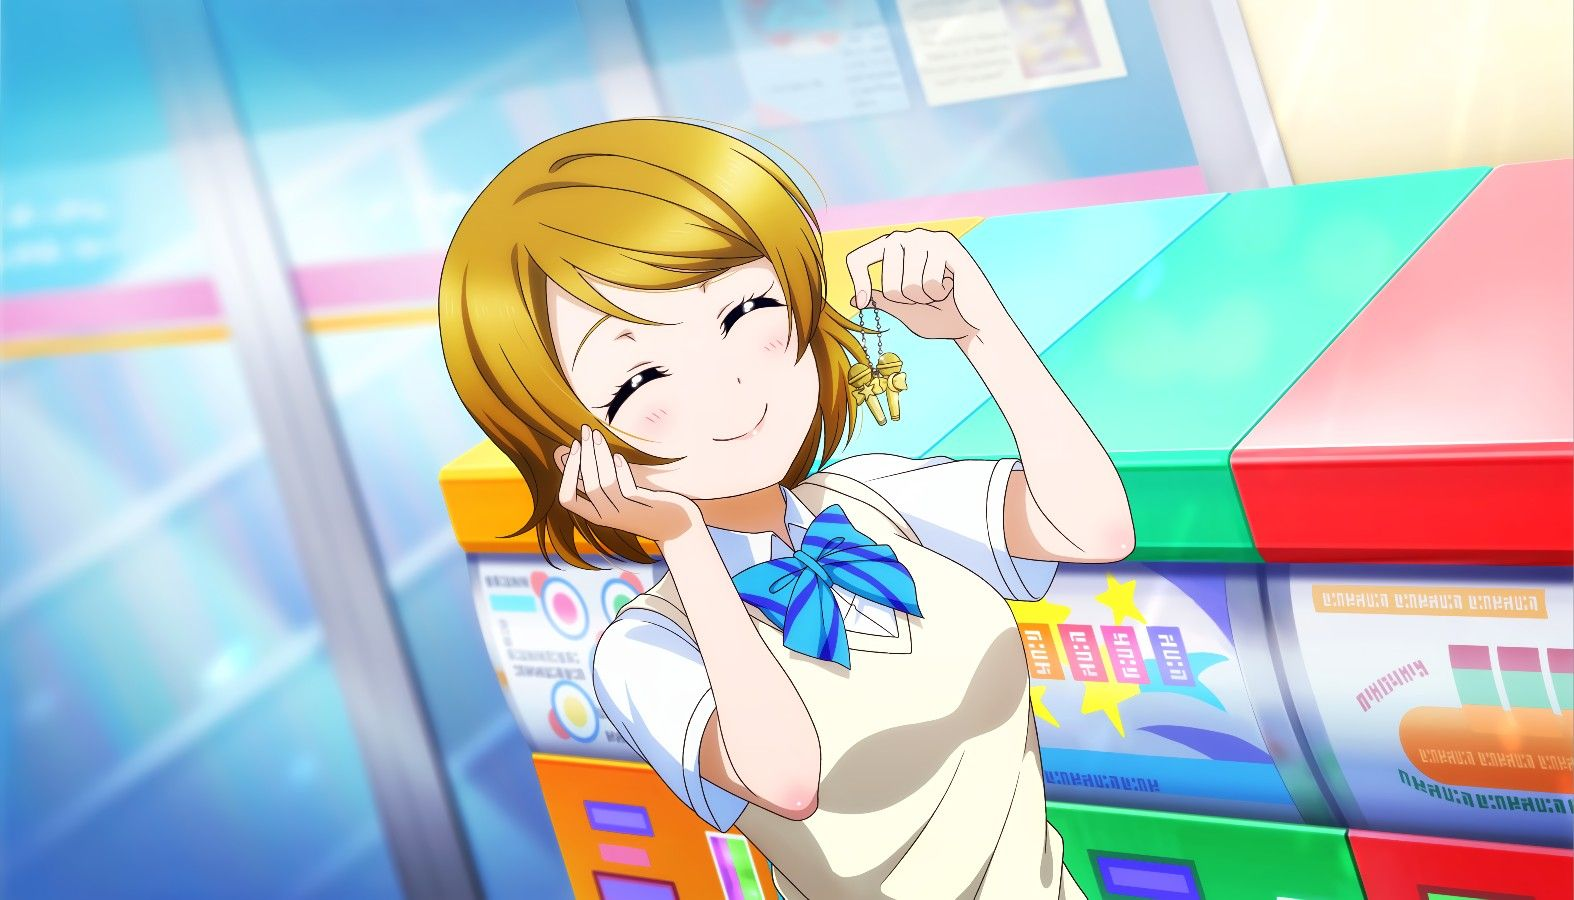 Pin by .. . on Hanayo in 2020 Anime, Koizumi, Projects